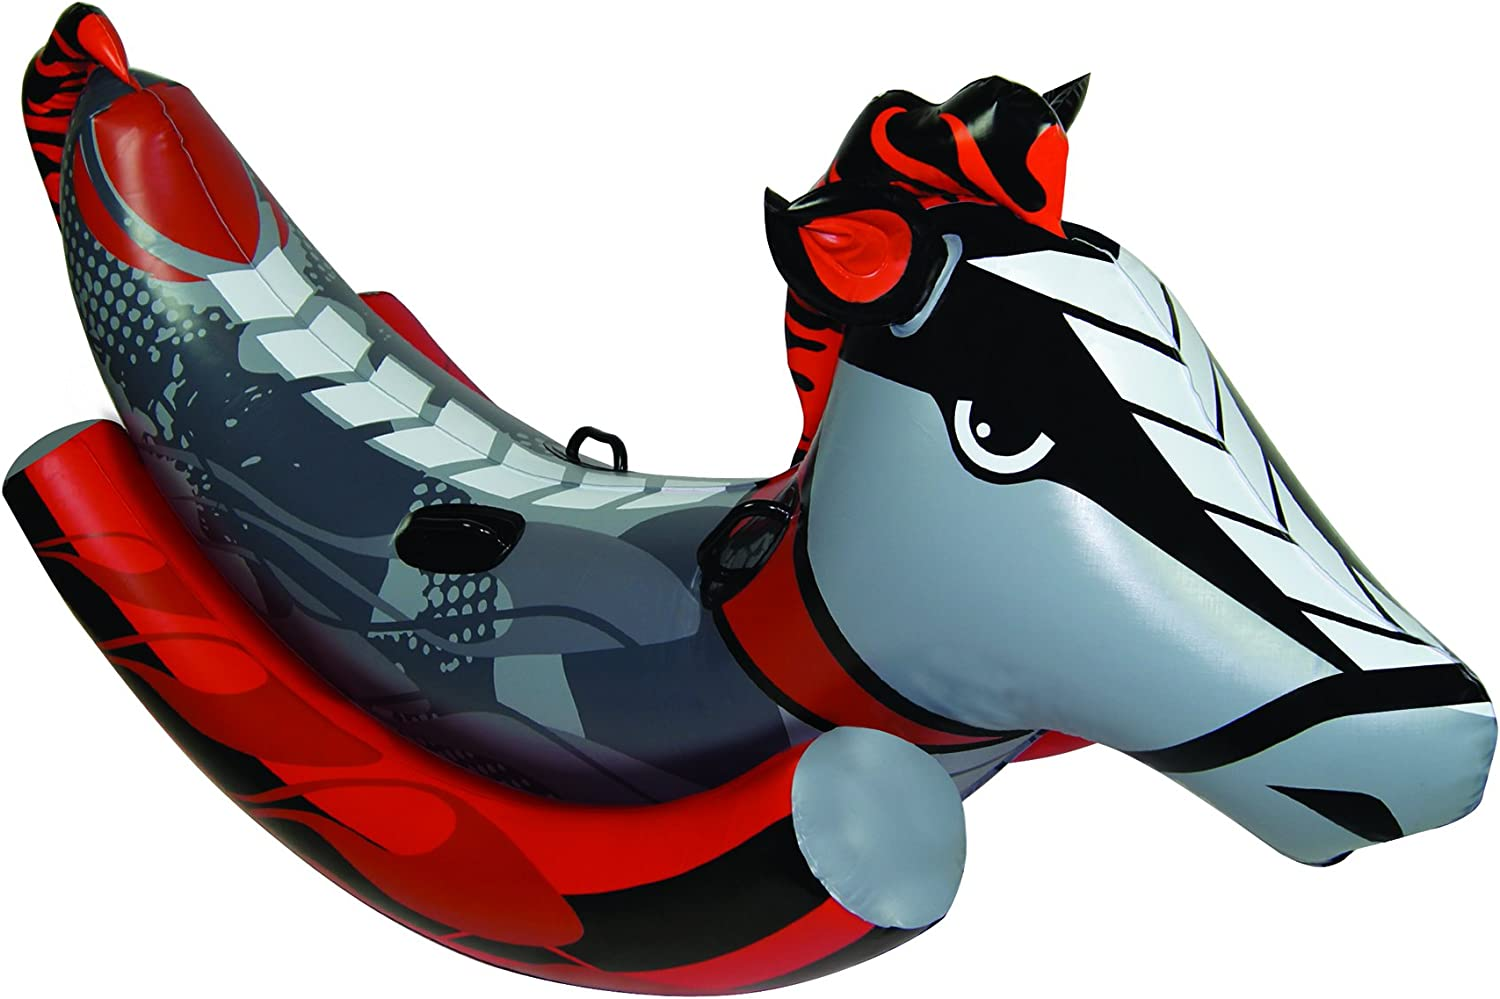 Poolmaster Swimming Pool Rockin' Horse Float Toy, Multicolord